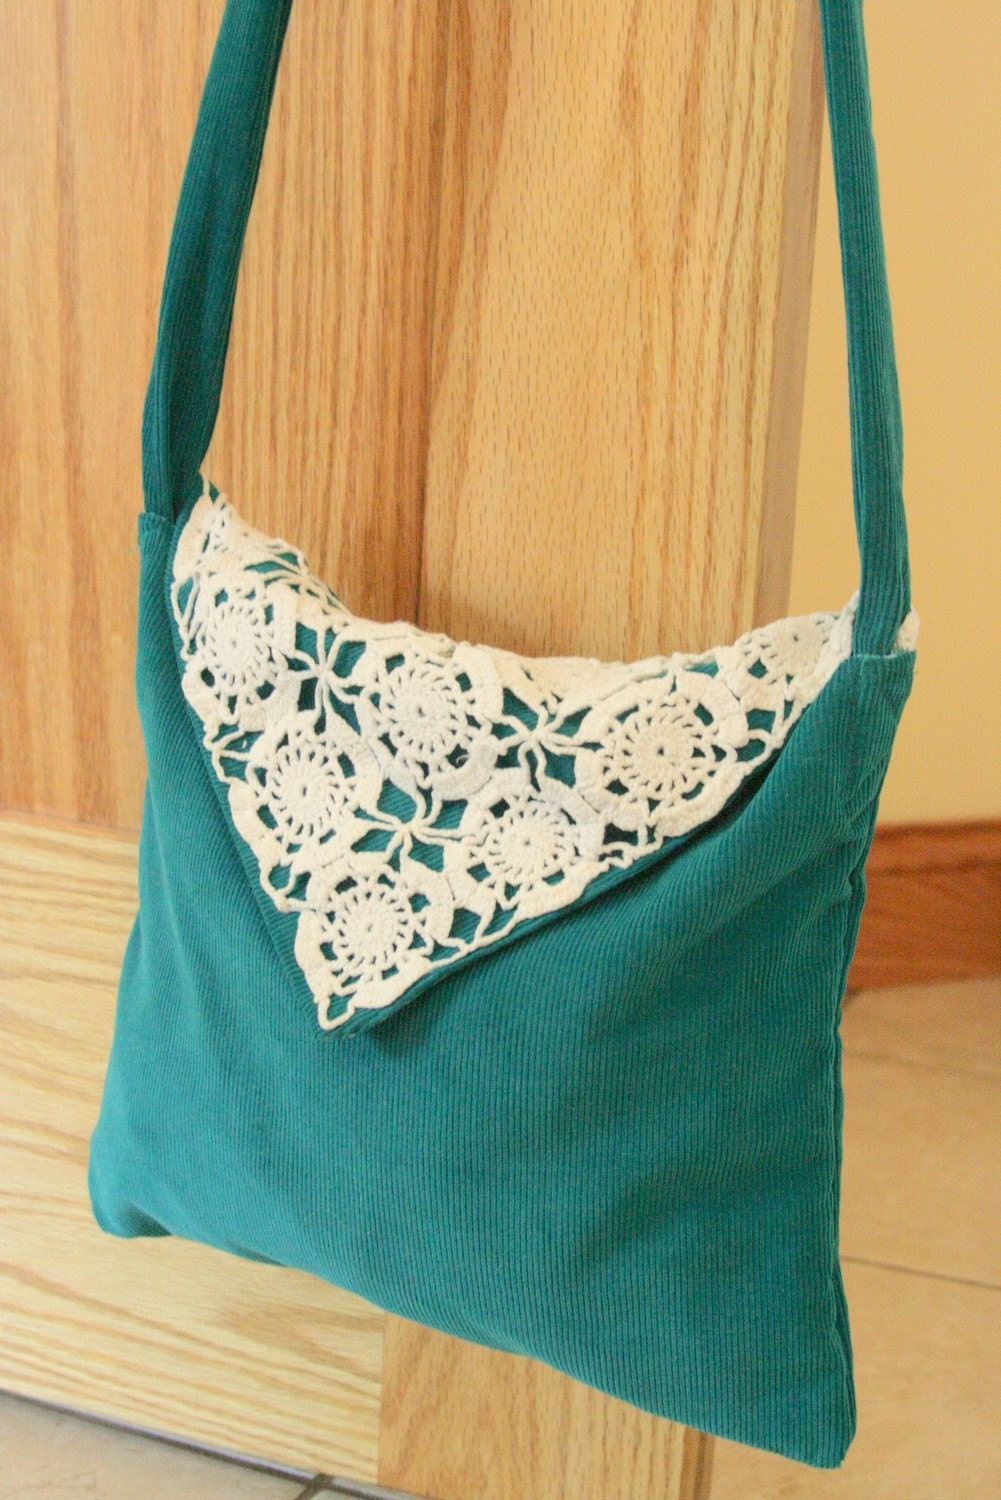 Eco Friendly Handmade Messenger Bag Corduroy Teal Green Reclaimed Vintage Crocheted Doily